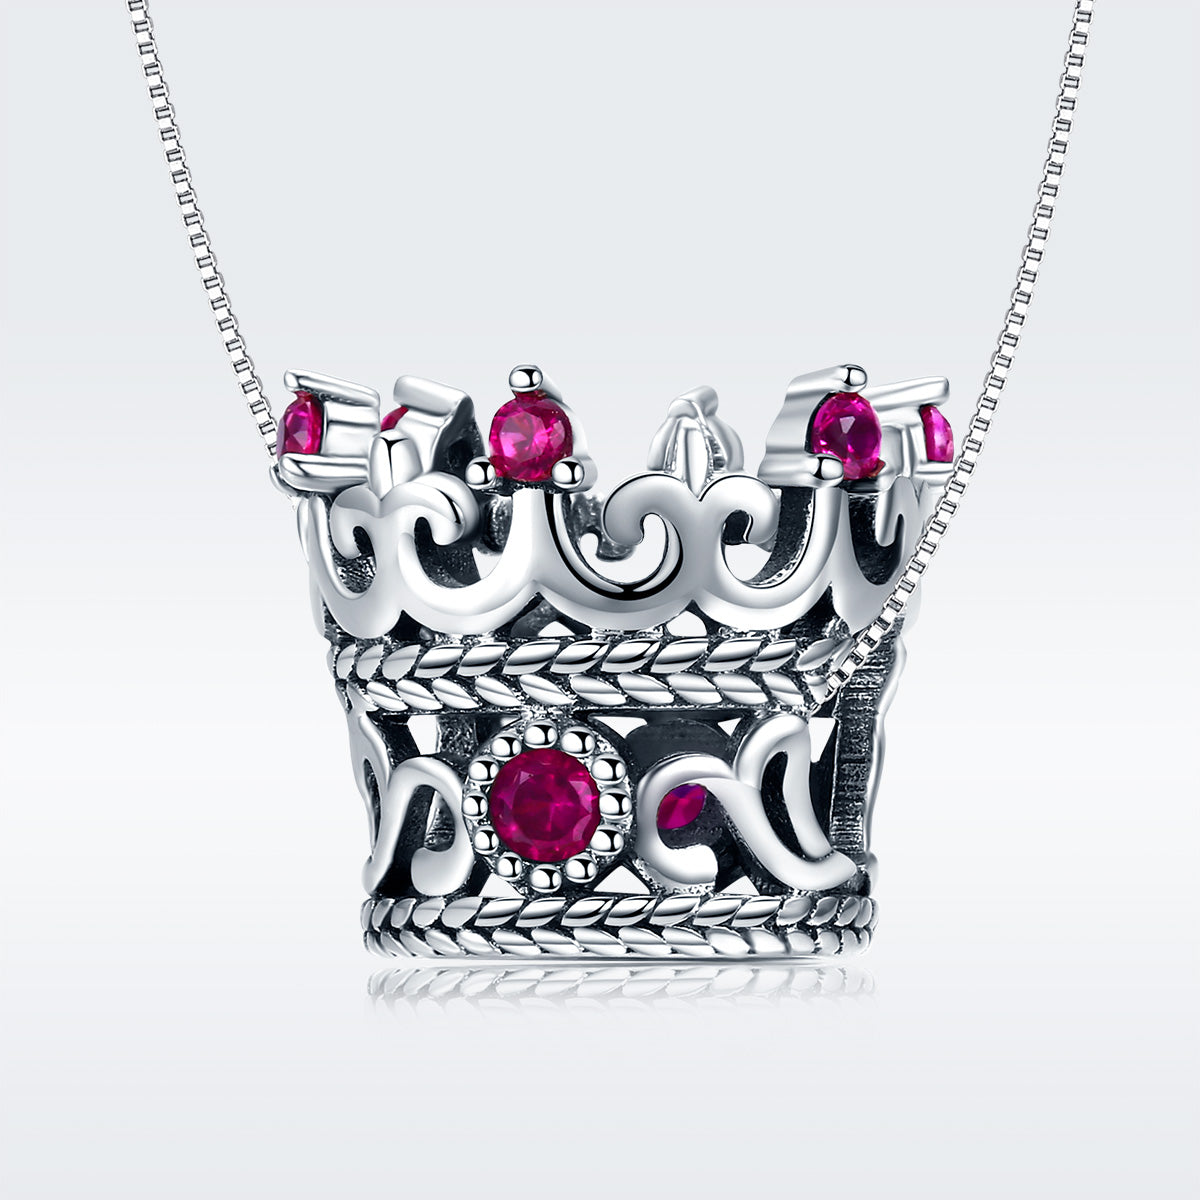 S925 Sterling Silver Oxidized Zirconia Queen Crown Charms